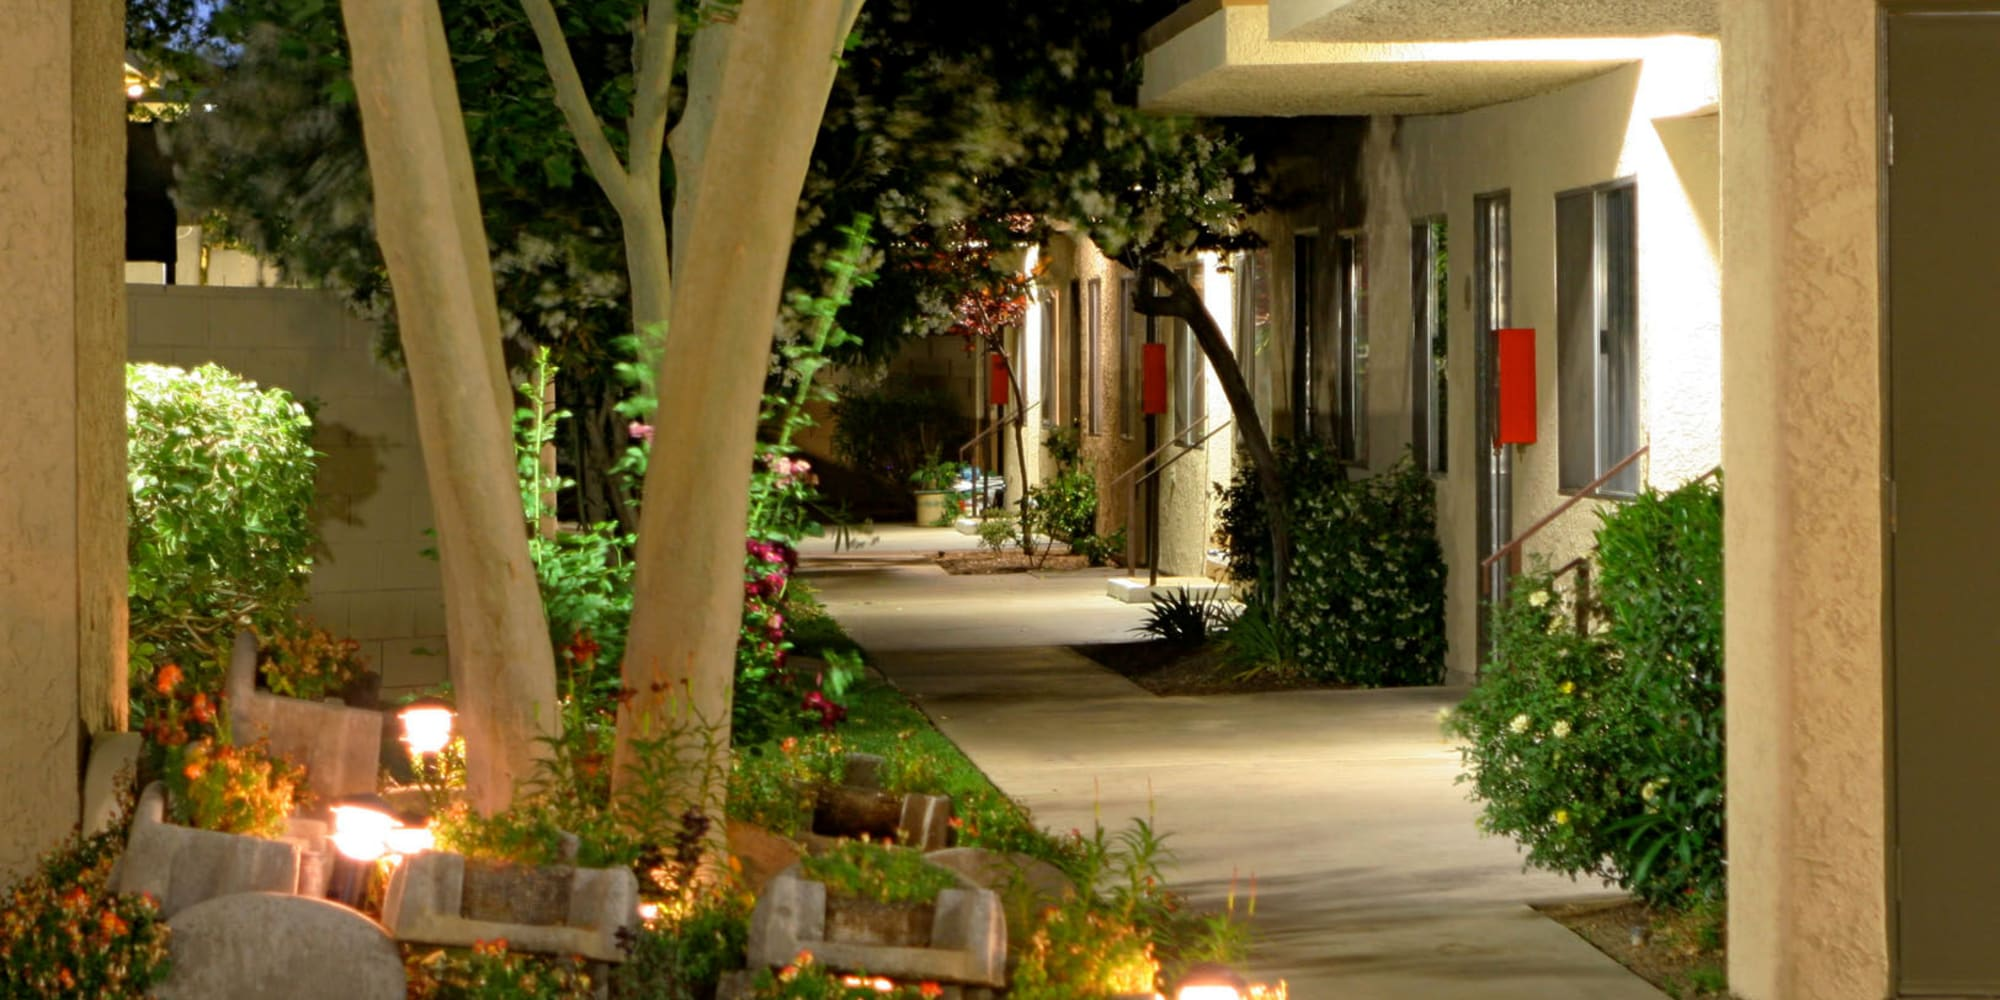 Flowers lit up by the community's evening lights at Parkwood in Lancaster, California